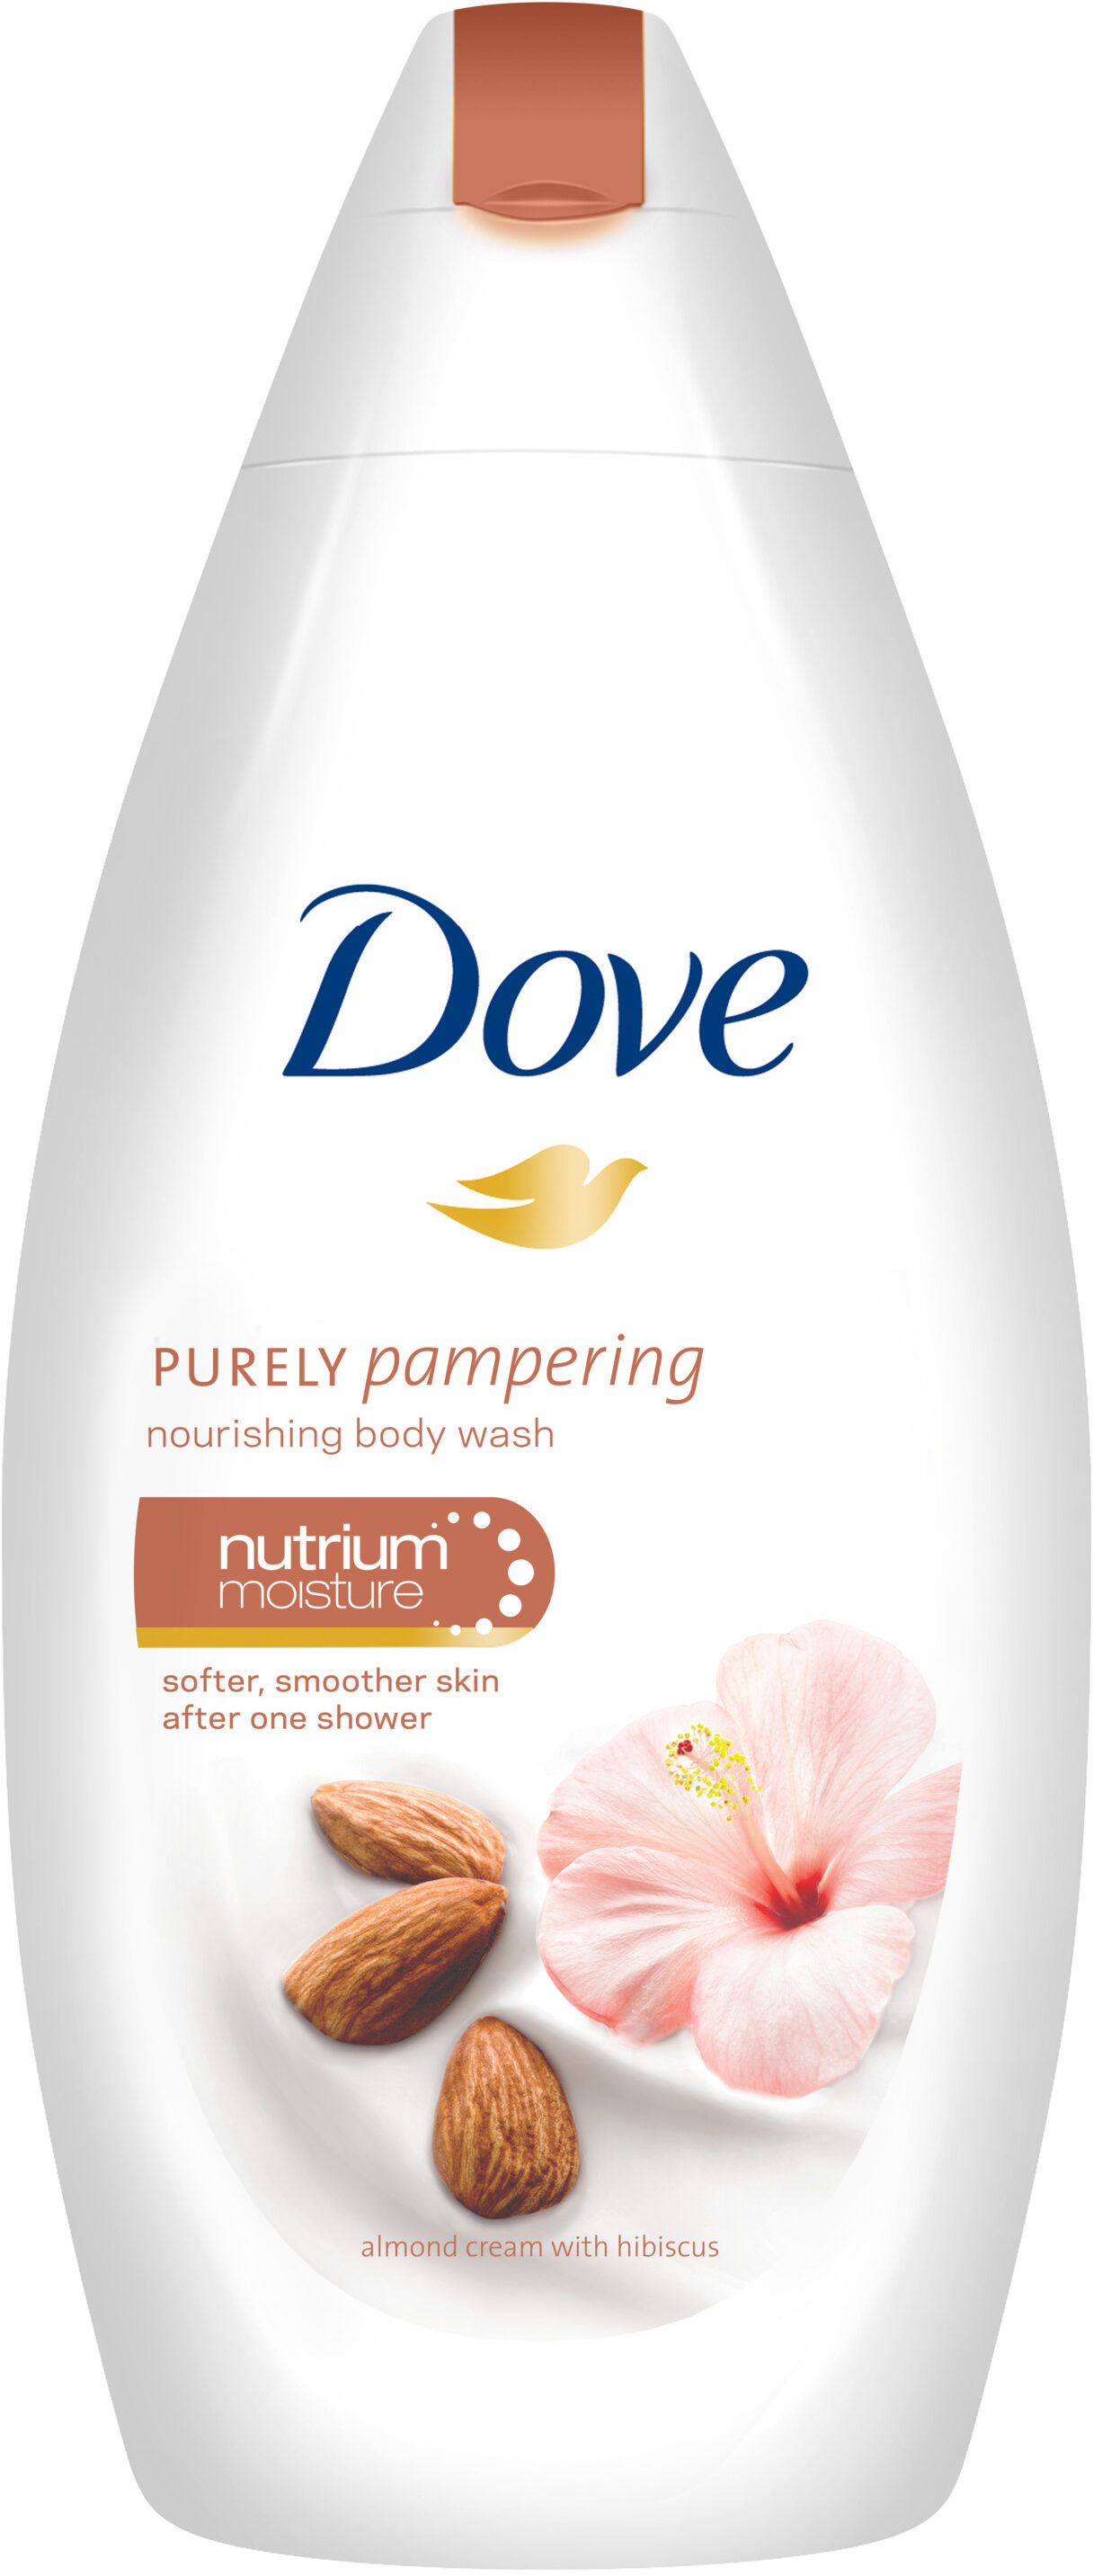 Dove Gel Douche Amande et Hibiscus - Product - fr